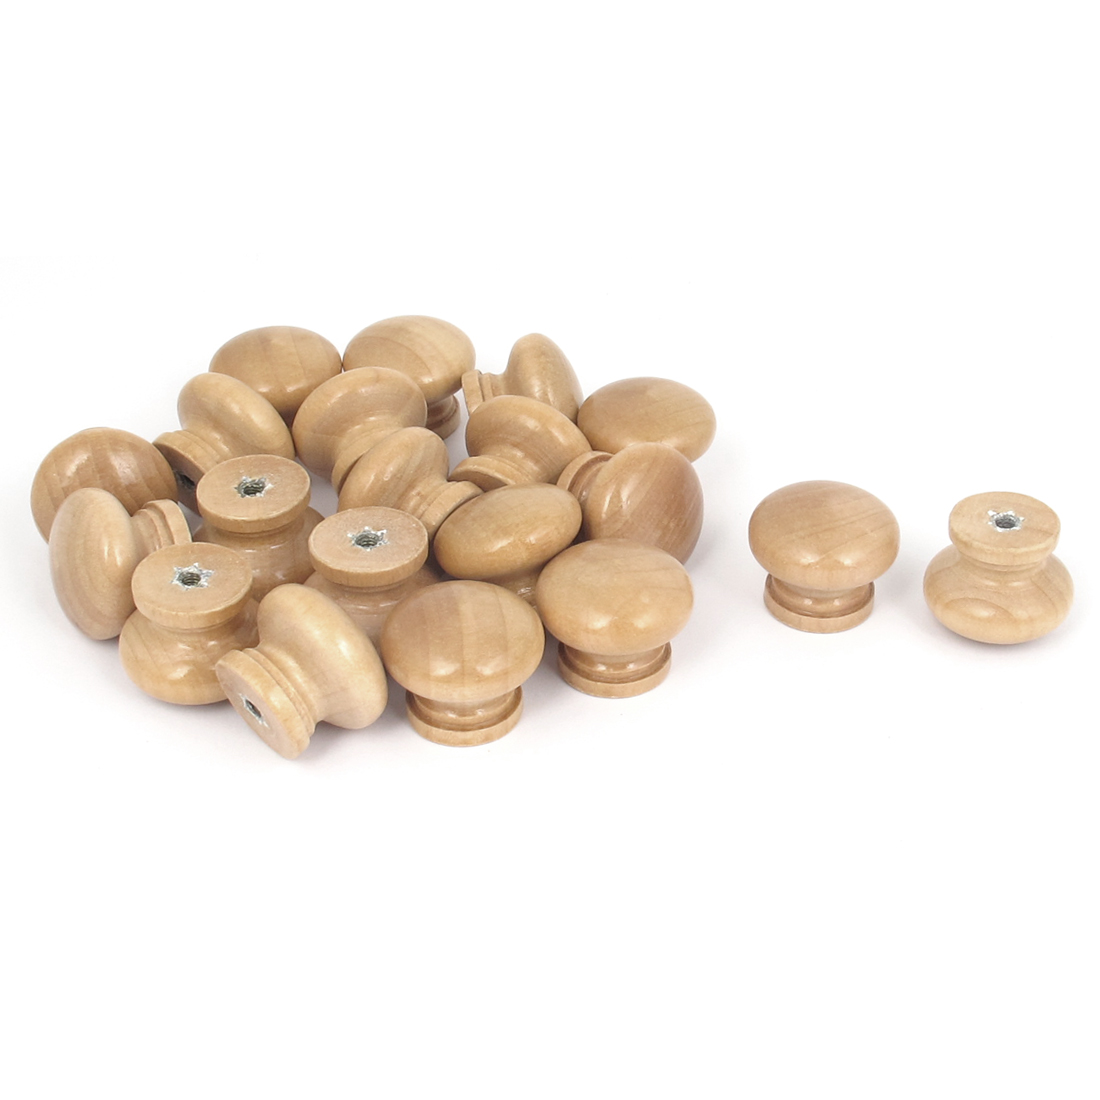 Cabinet Cupboard Dresser Drawer Round Wooden Pull Knob Handle Beige 20Pcs